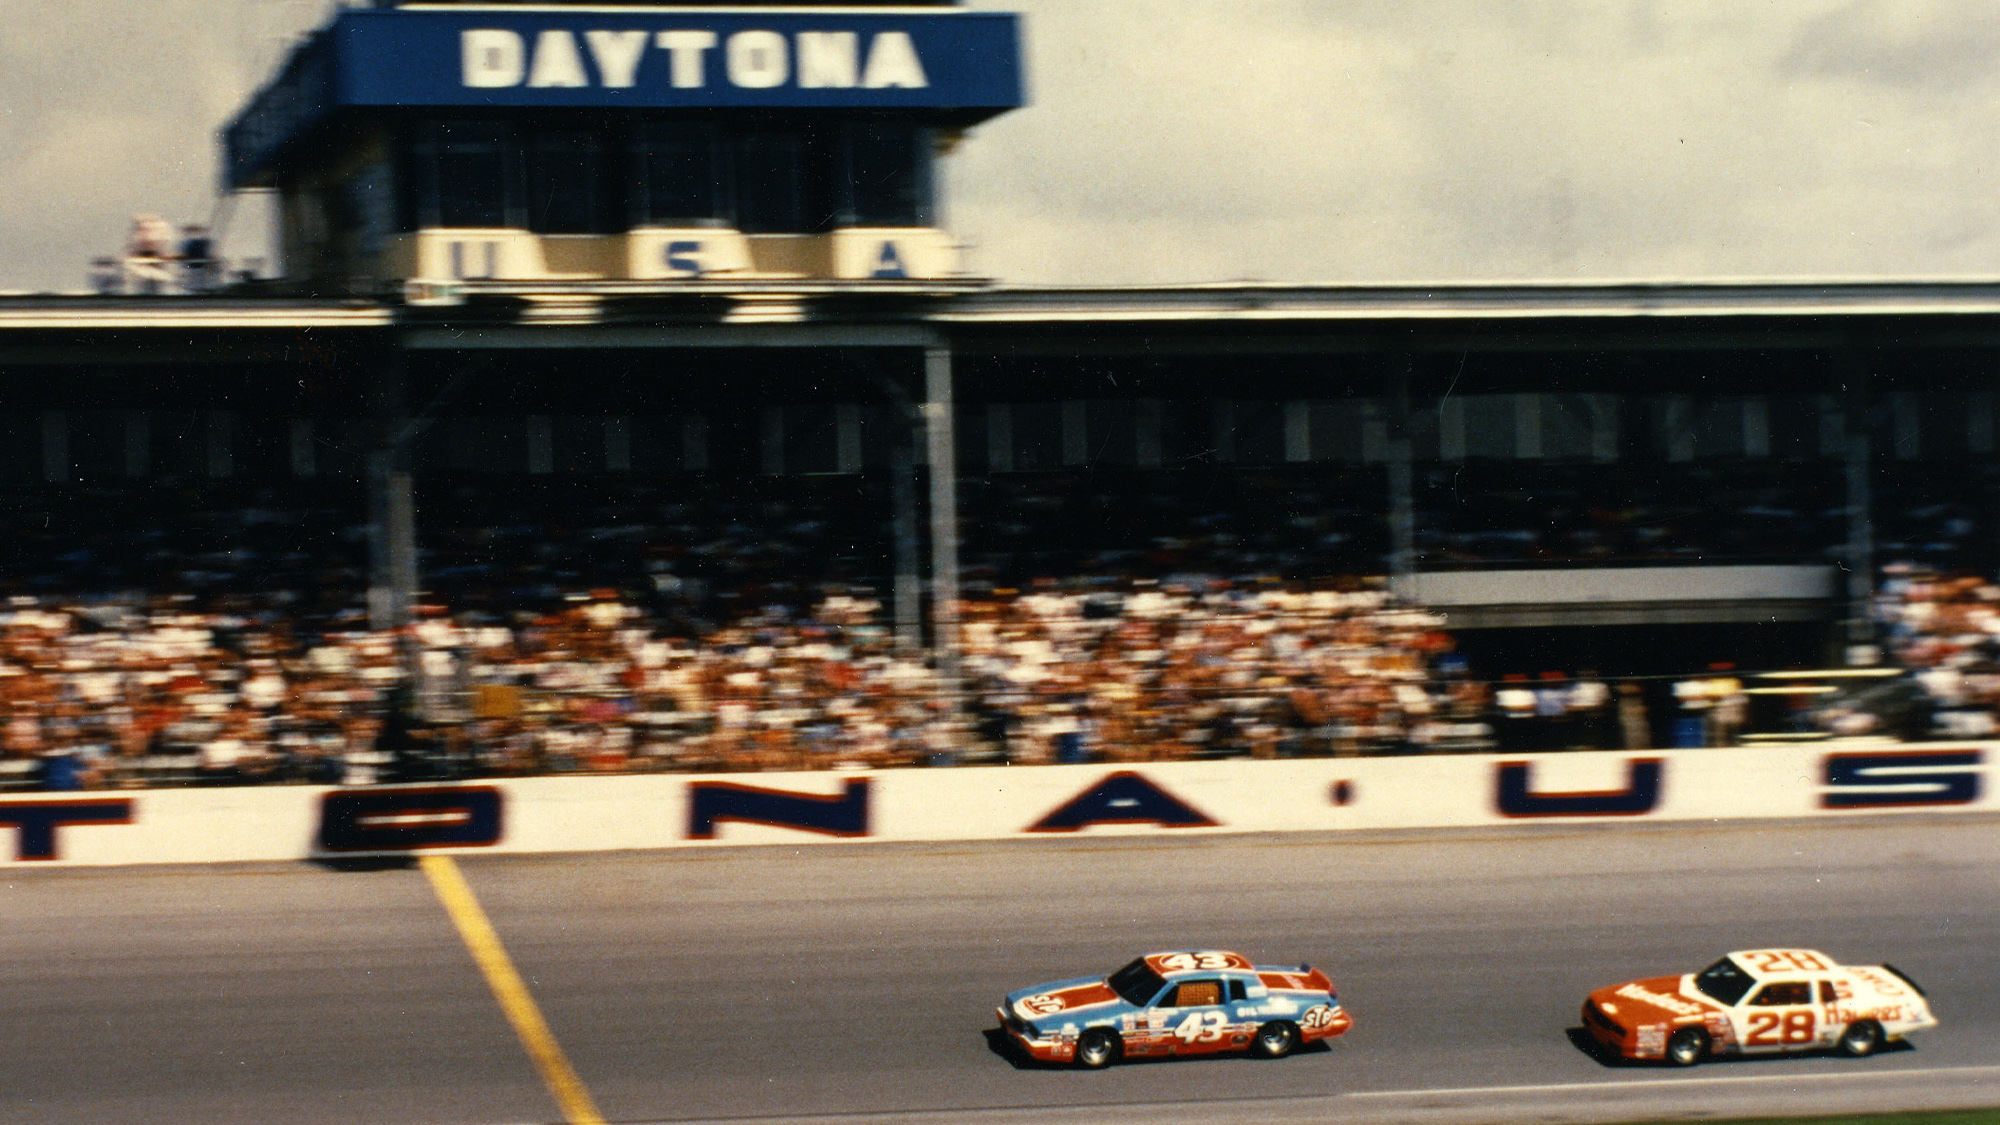 Richard Petty crosses the line to win the Firecracker 400 at Daytona in 1984